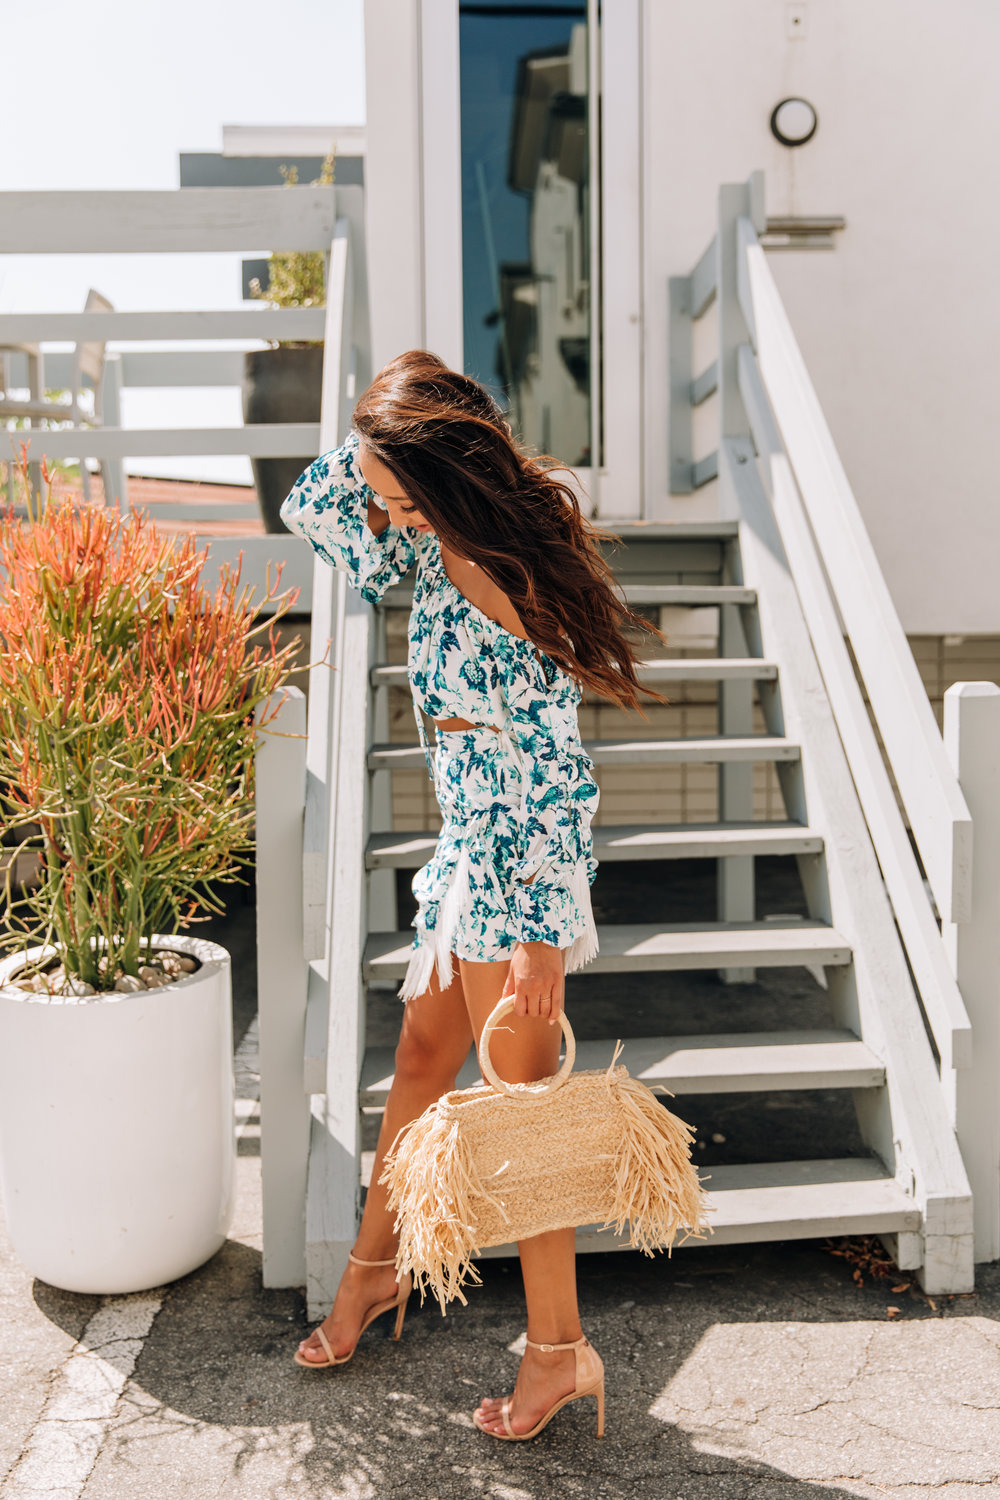 And pair your set with another summer trend- - your favourite straw bag.(so ridiculously summer, I know) and with so many floating around, here are some fun ones that will make you stand out.